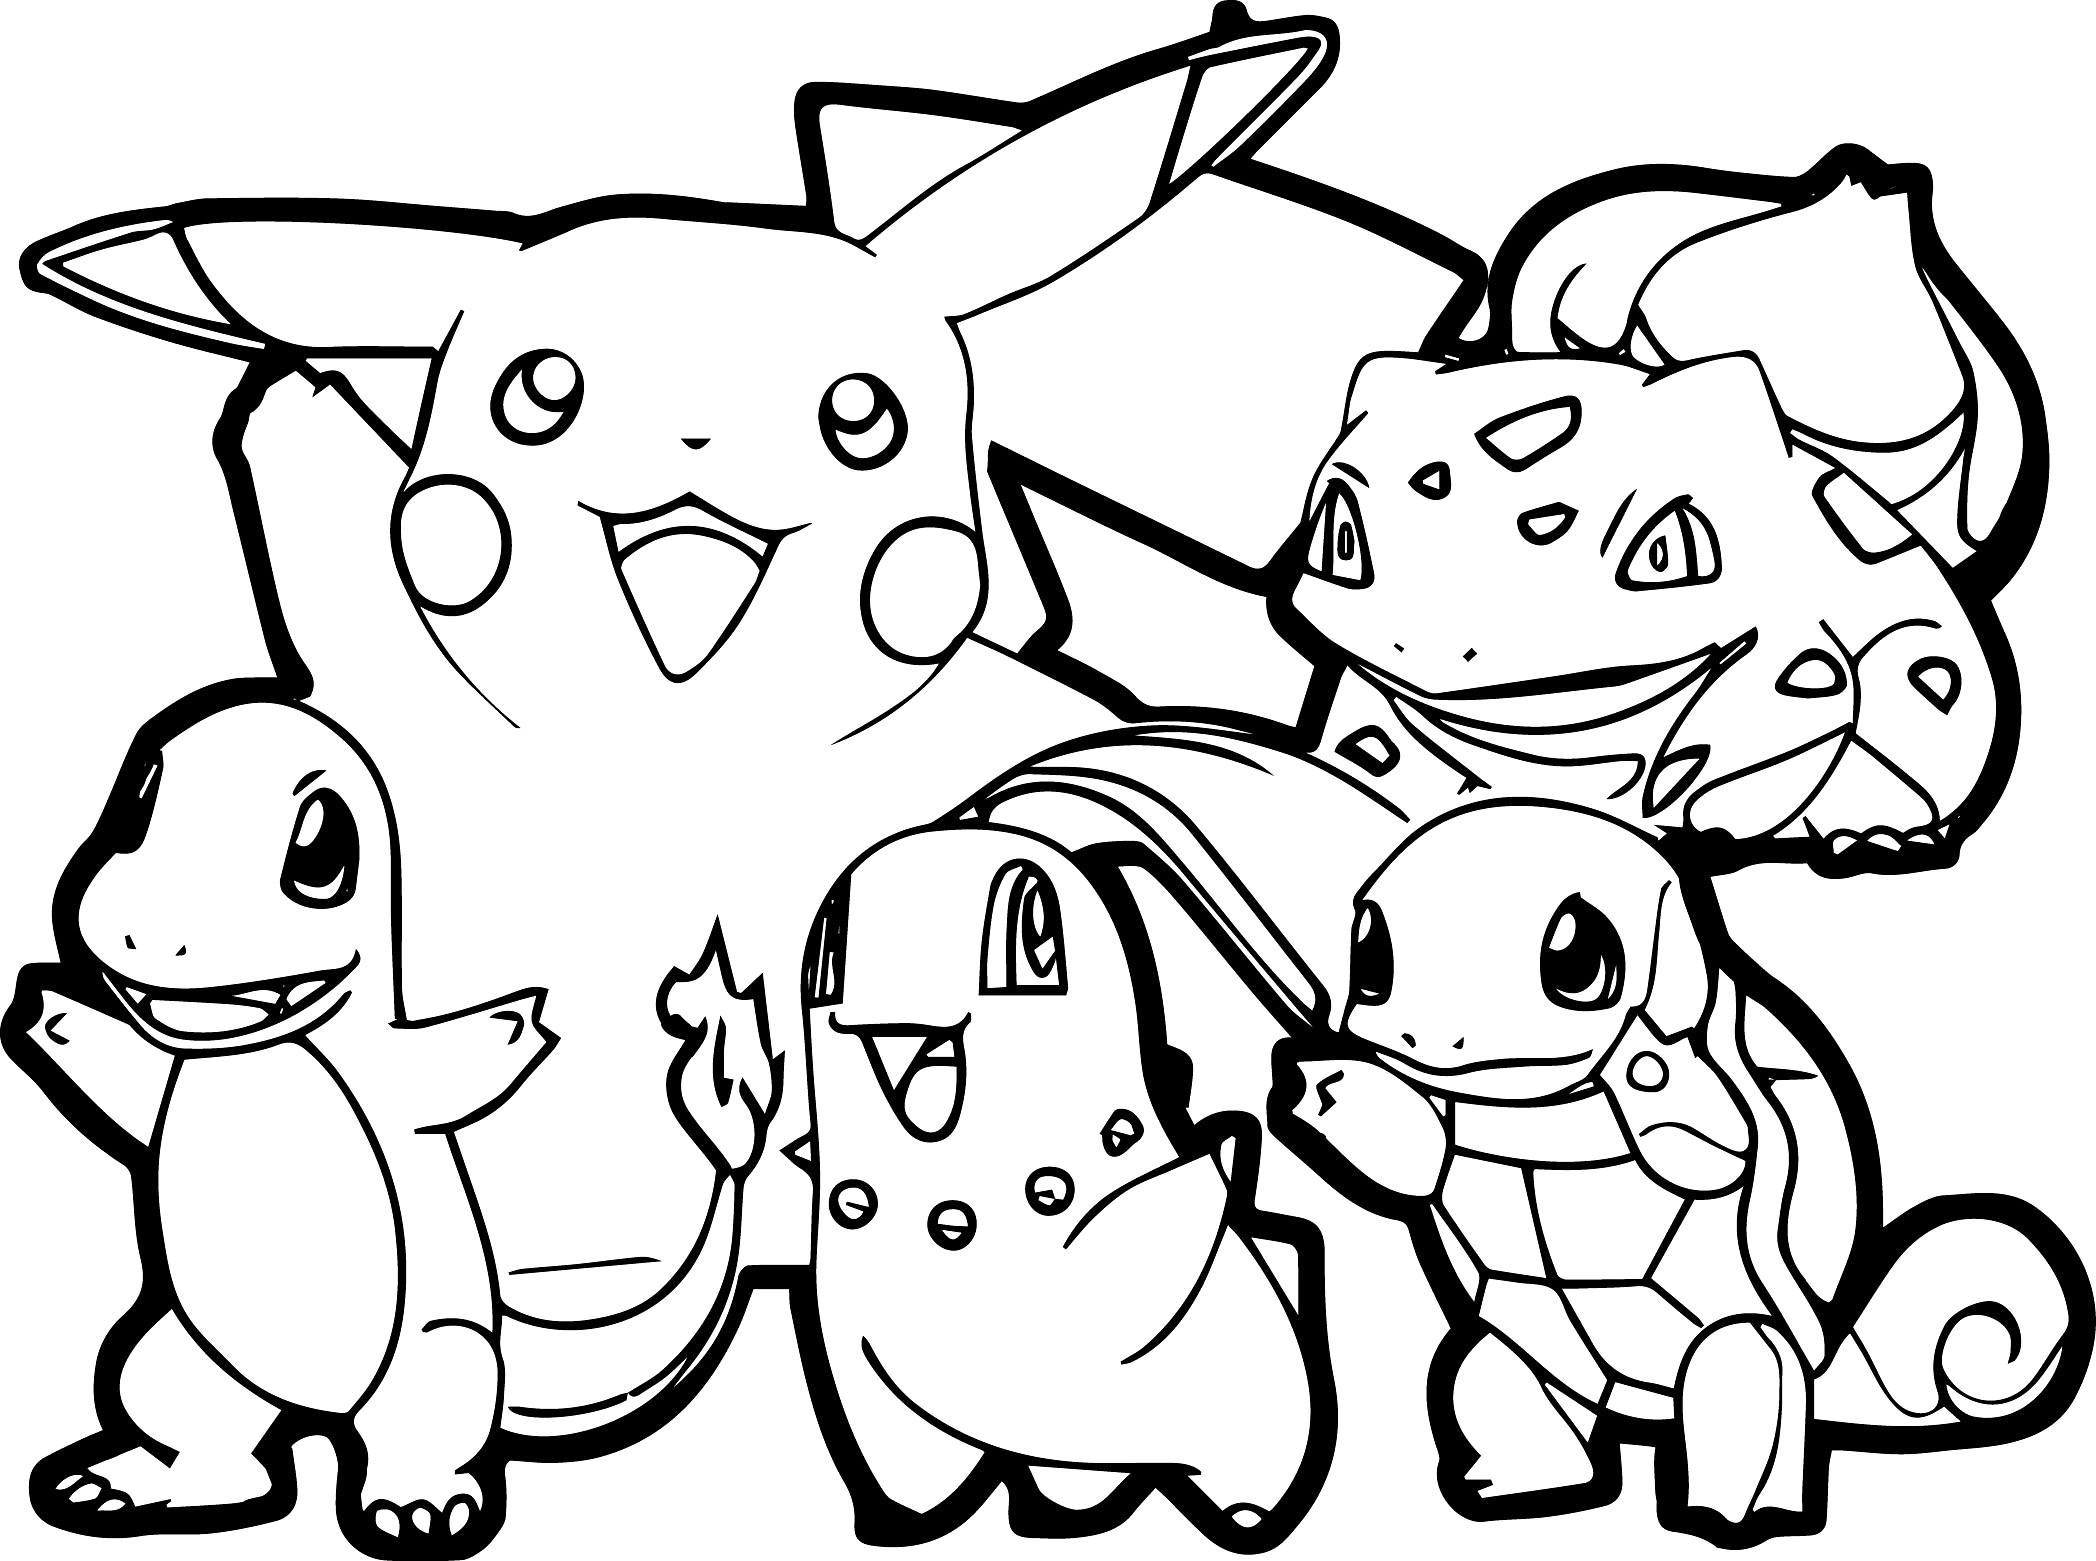 fire pokemon coloring pages fire type pokemon coloring pages at getcoloringscom pages pokemon coloring fire